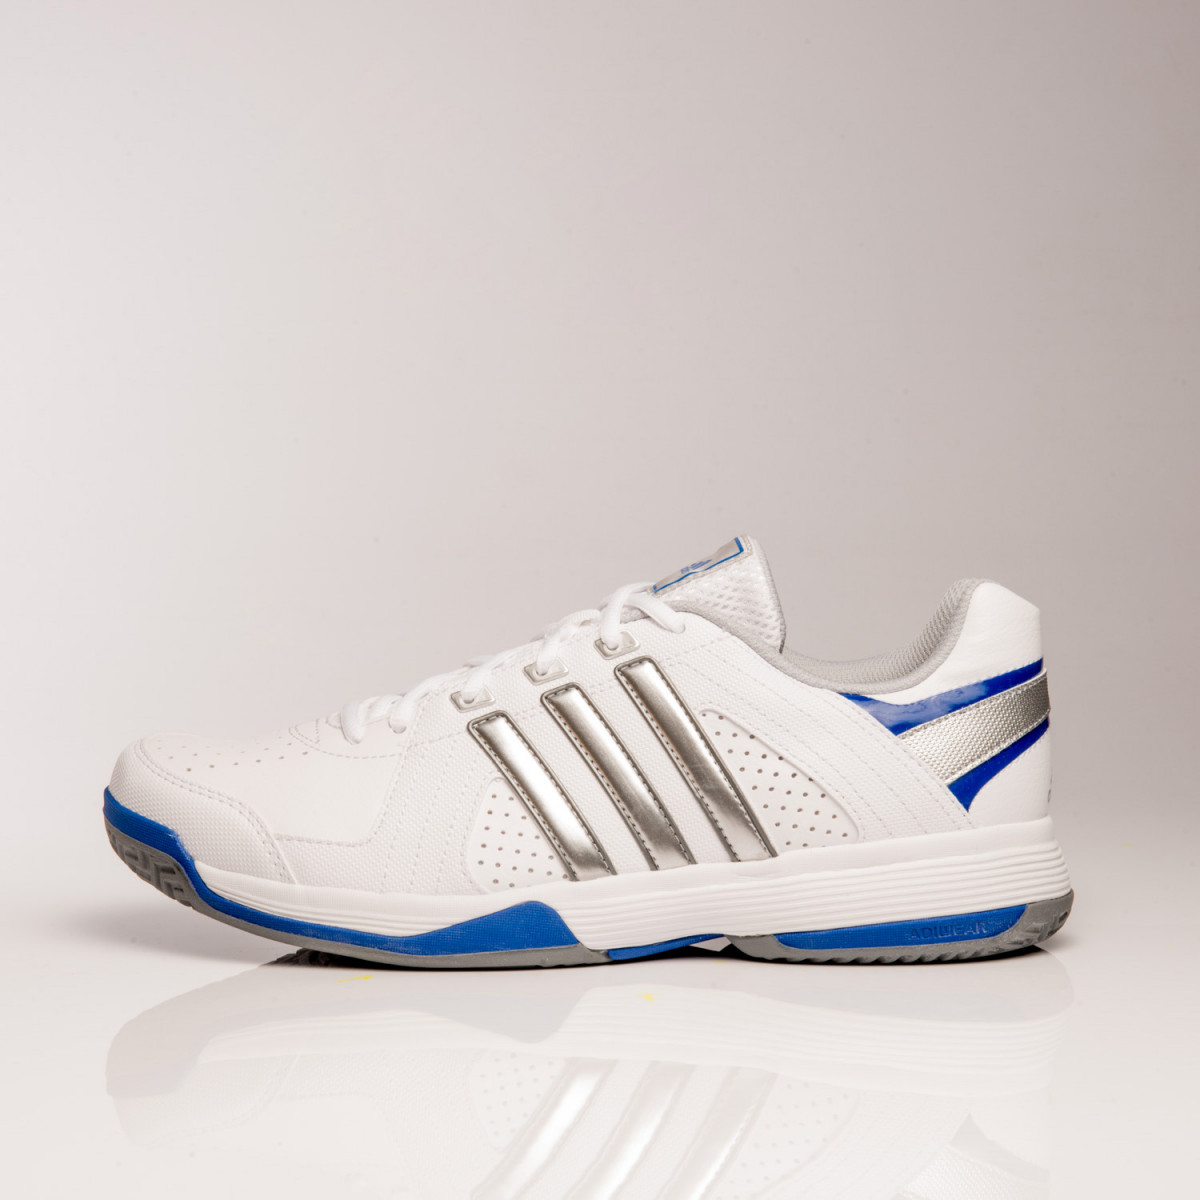 ZAPATILLAS ADIDAS RESPONSE APPROACH STR